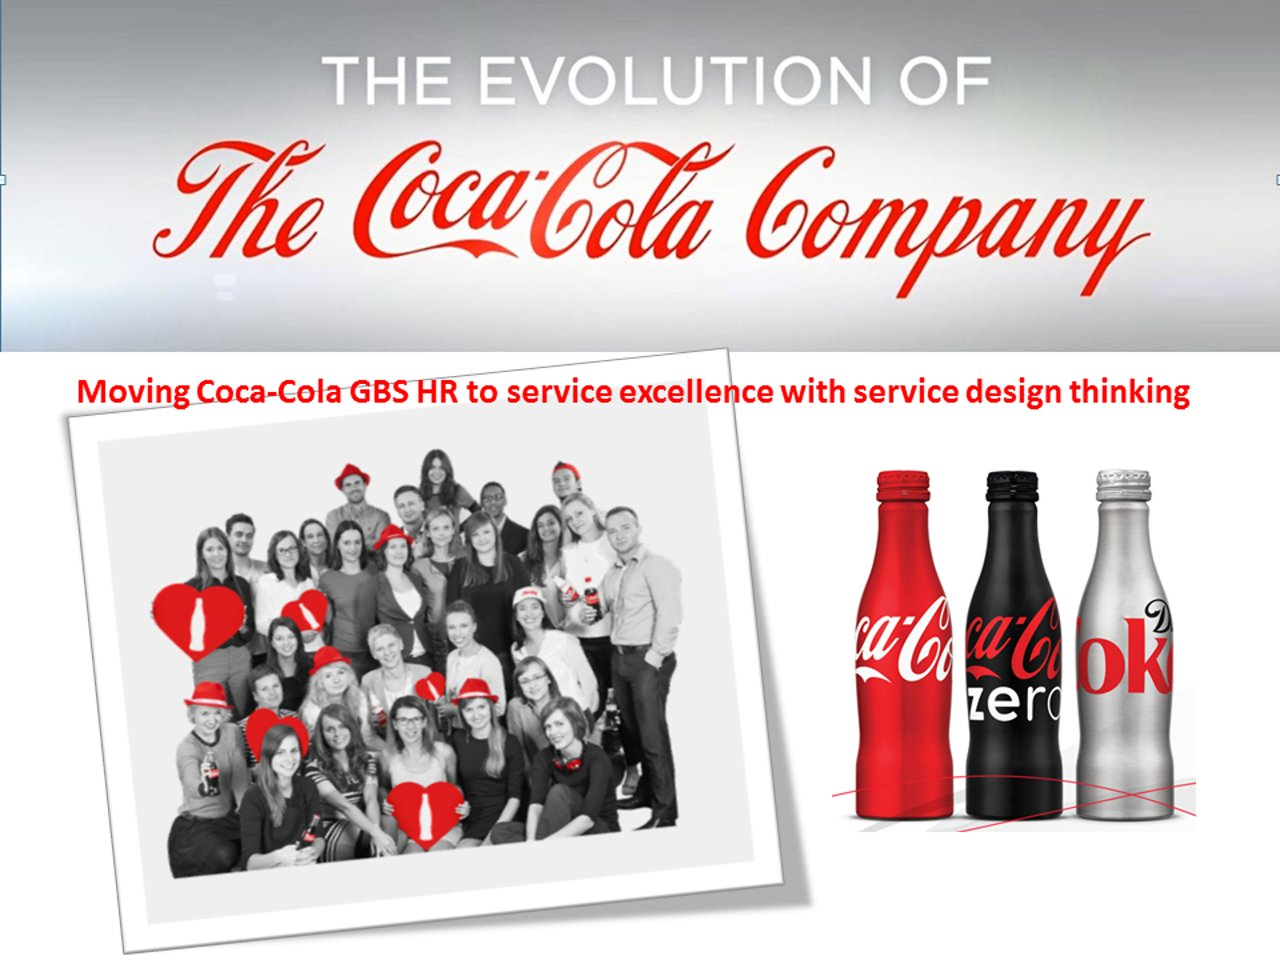 human resources in coca cola Describe the coca-cola company's organizational design, key strategic control systems, primary human resources concerns, and cultural factors, the effect they have had on the implementation of the coca-cola company's strategy.